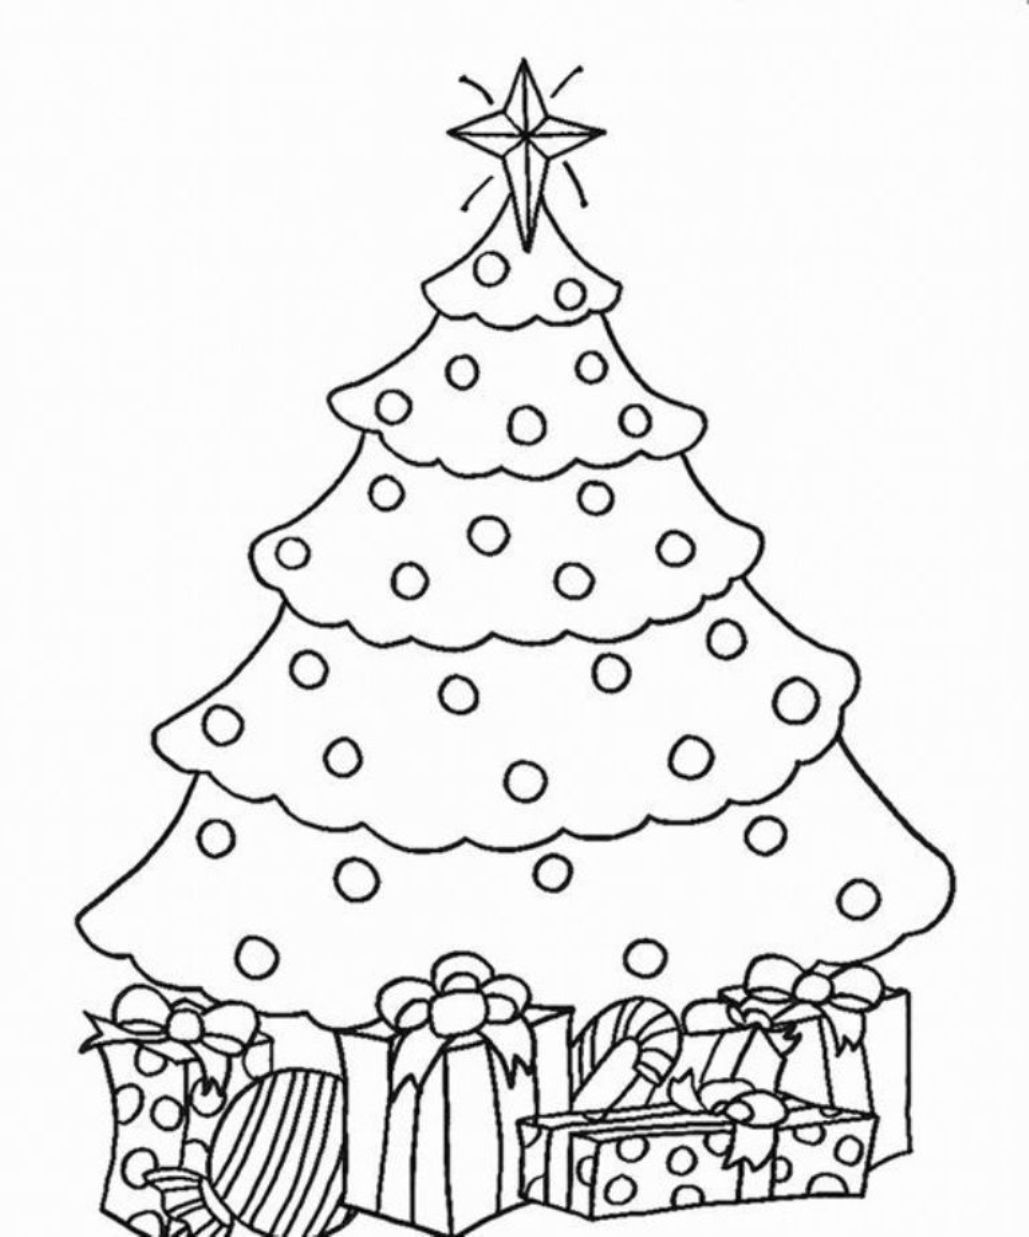 christmas card coloring pages unique blank christmas tree coloring page top free coloring pages christmas card